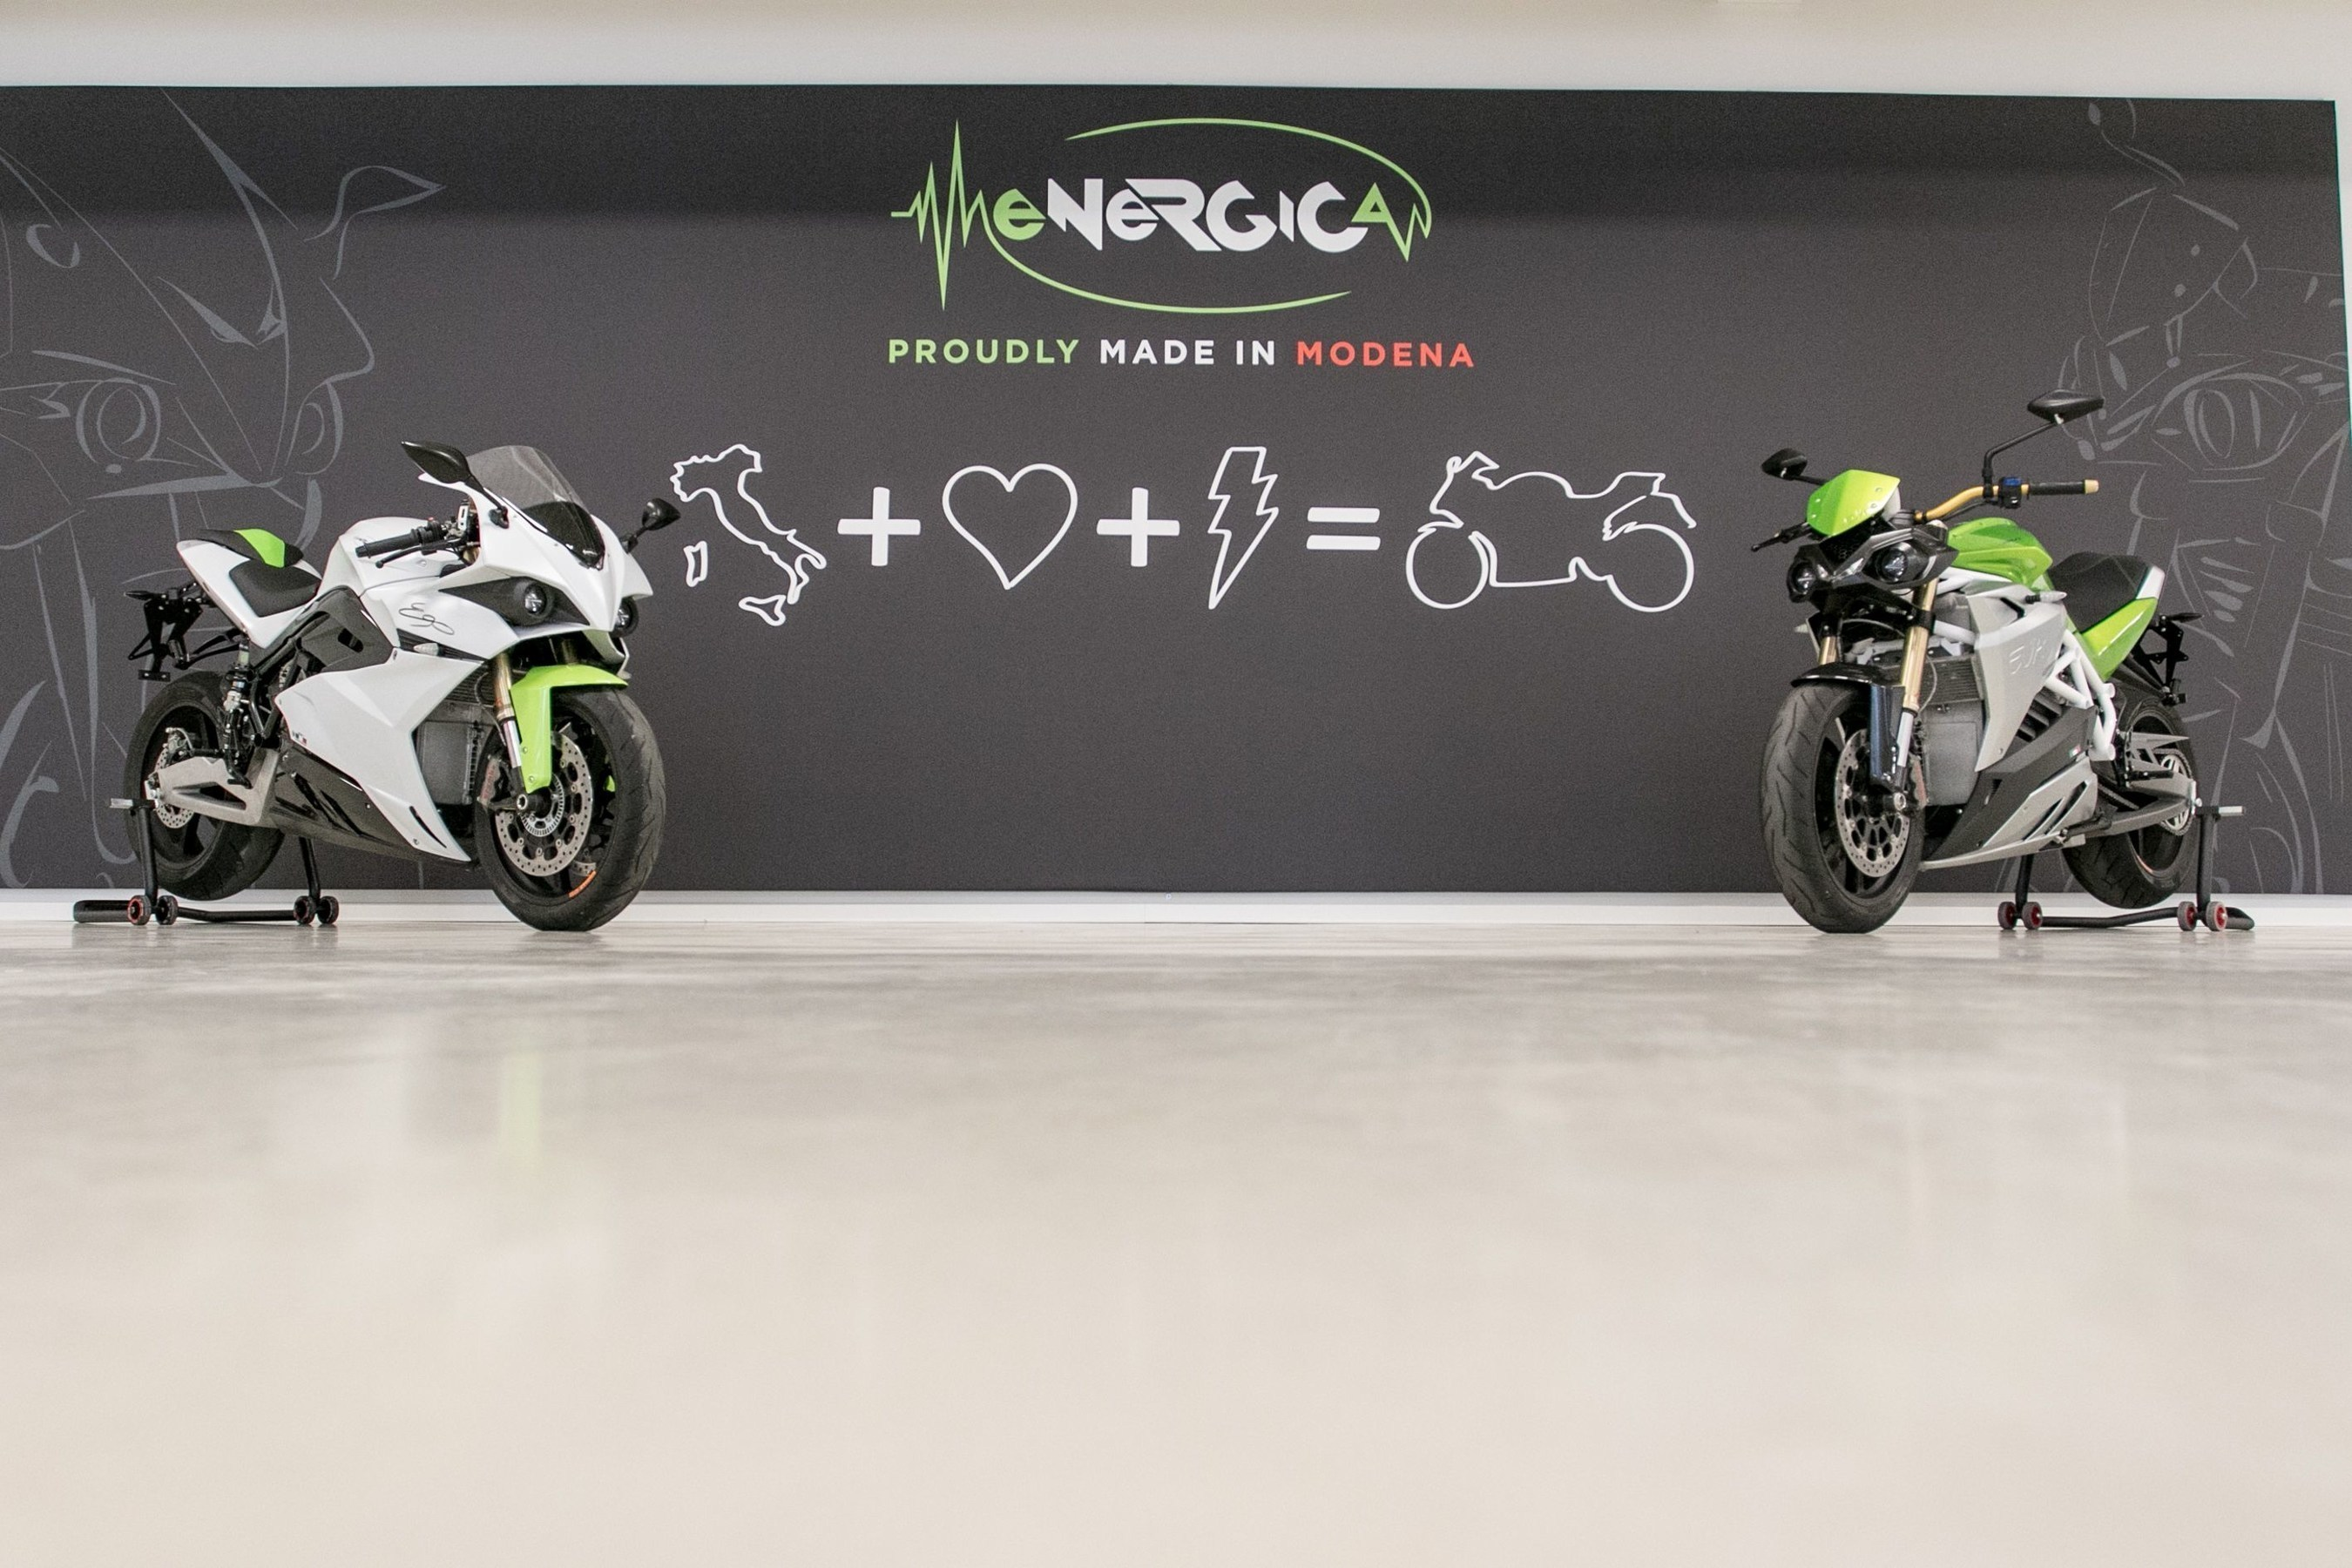 Energica Motorcycles inside the Italian flagship showroom